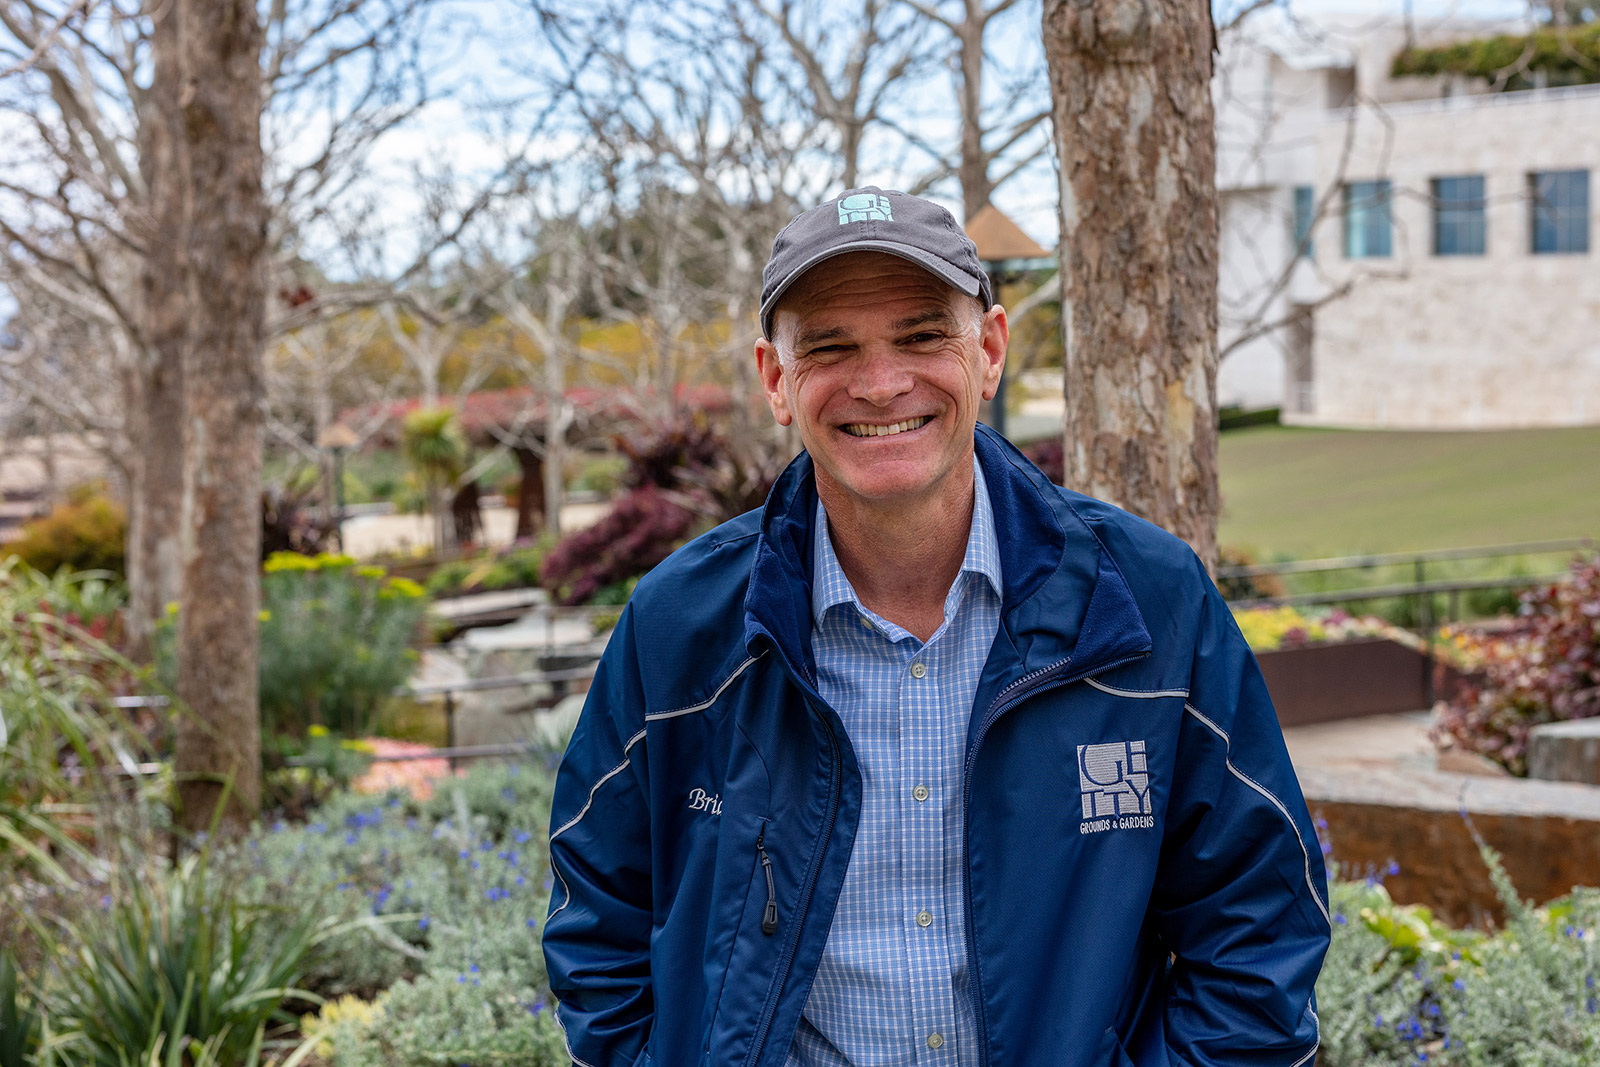 Brian Houck wears a cap and blue jacket, looking at the camera. Behind him are trees